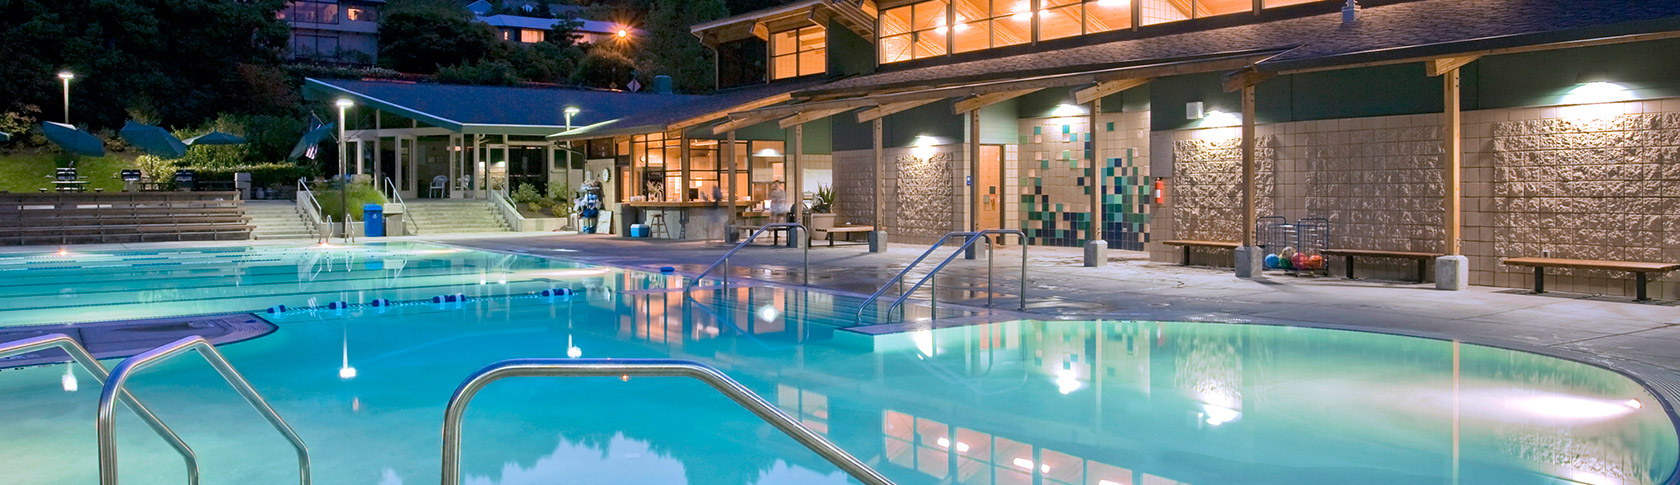 Recreation community nac architecture architects in seattle spokane washington los for Lynnwood swimming pool schedule